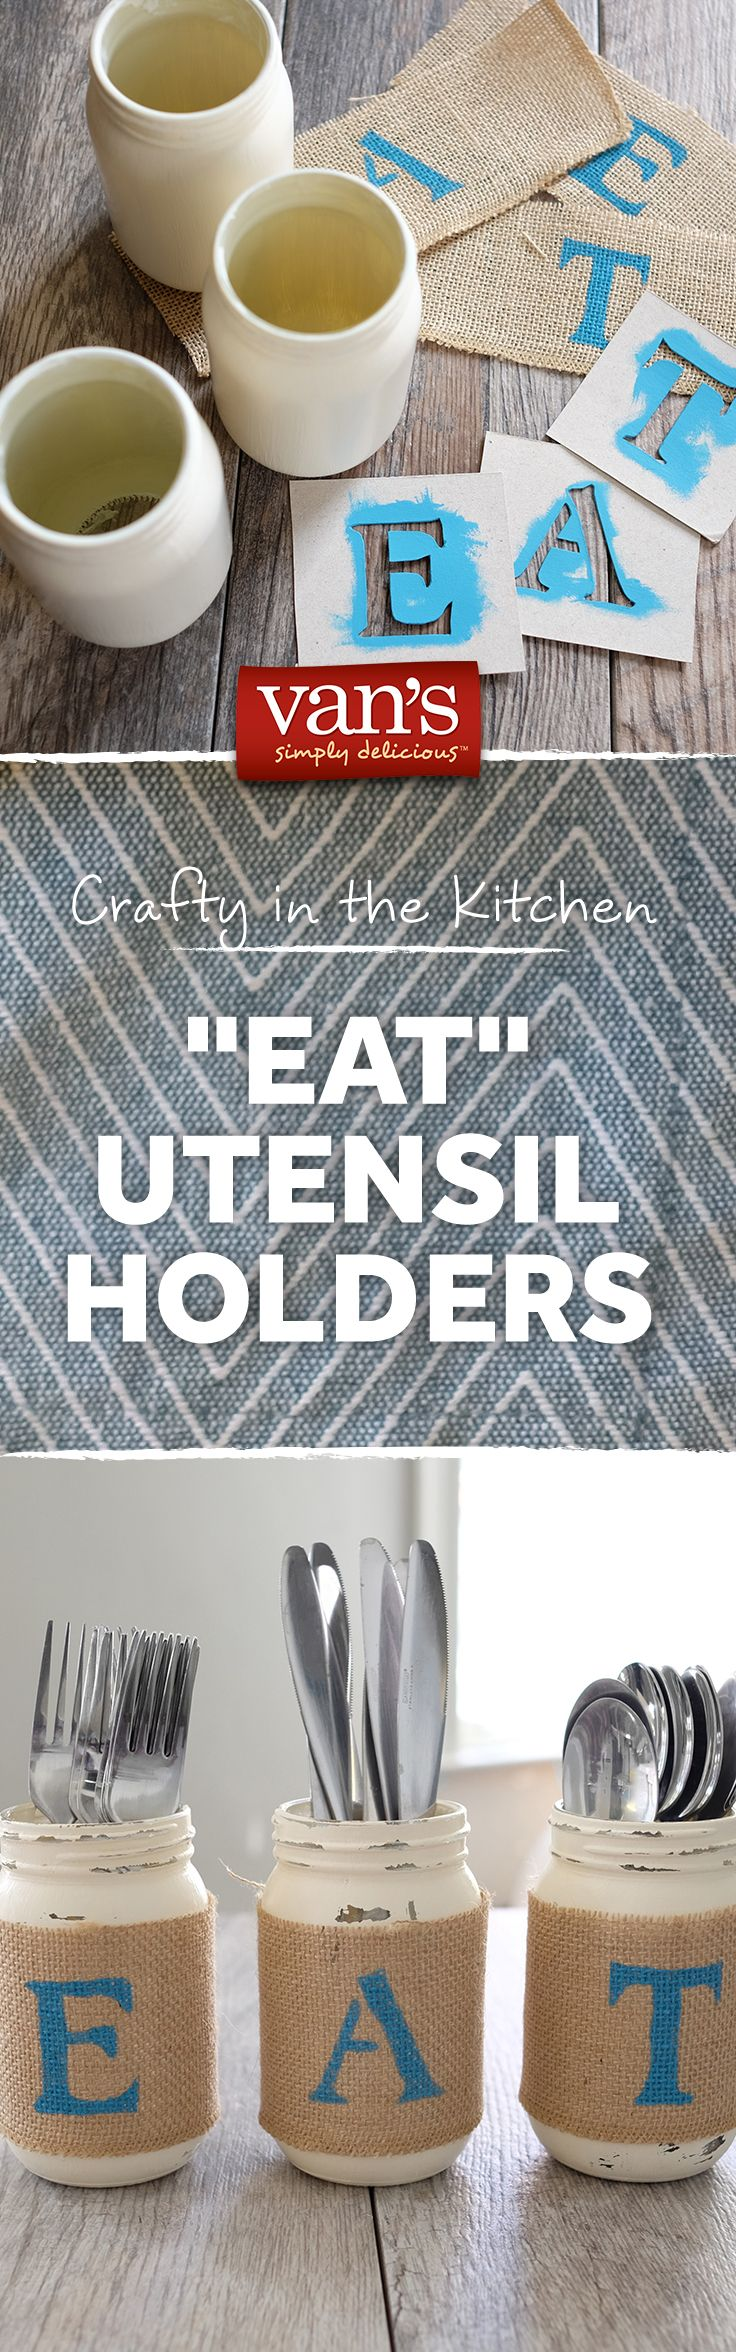 Grab some old mason jars and get crafty with these simple DIY utensil holders! What you need: Mason Jars, Paint, Stencils, Sand Paper, Burlap & Glue.